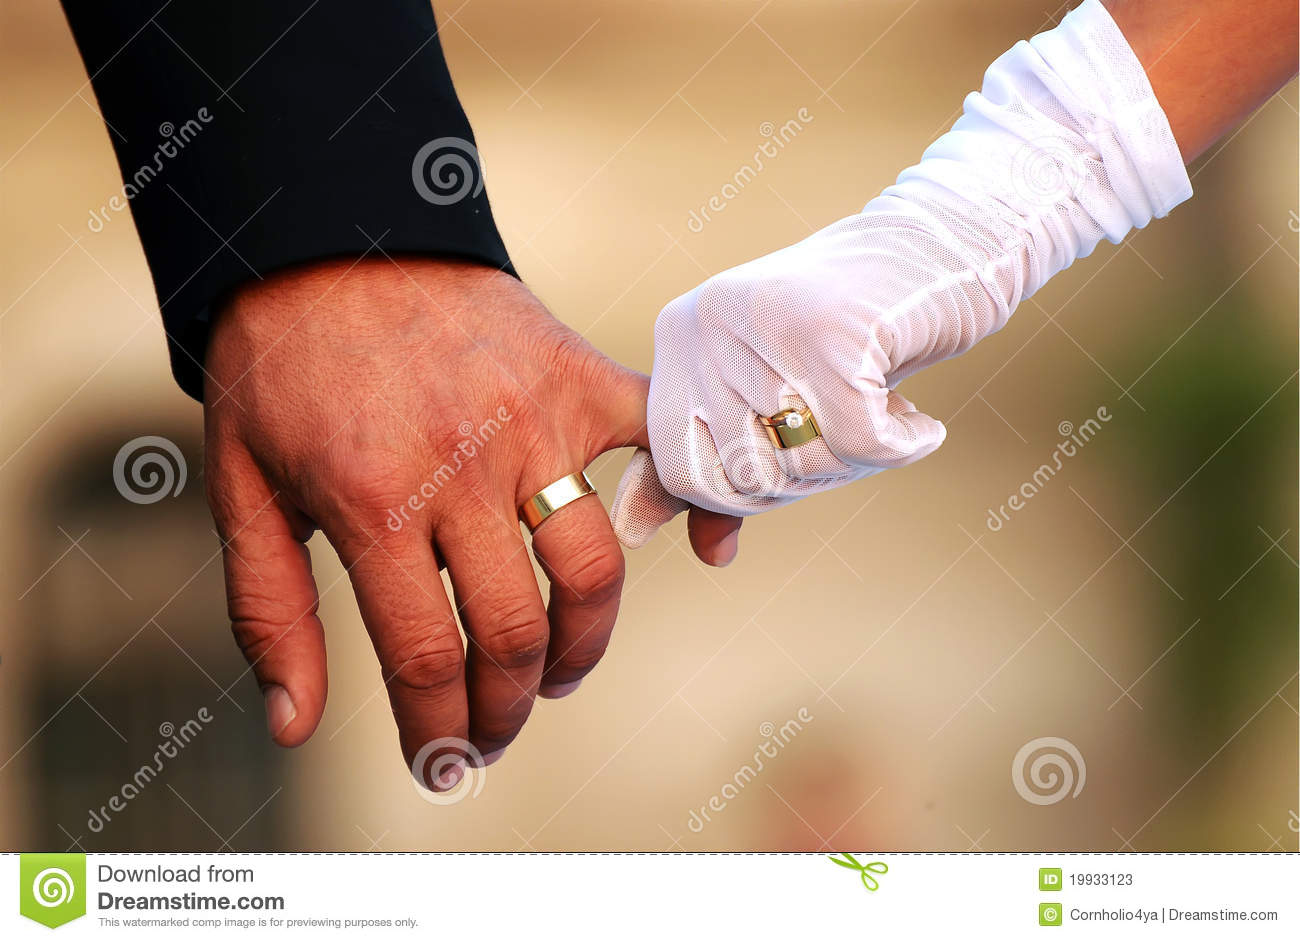 Wedding Couple Holding Hands Stock Image - Image: 19933123